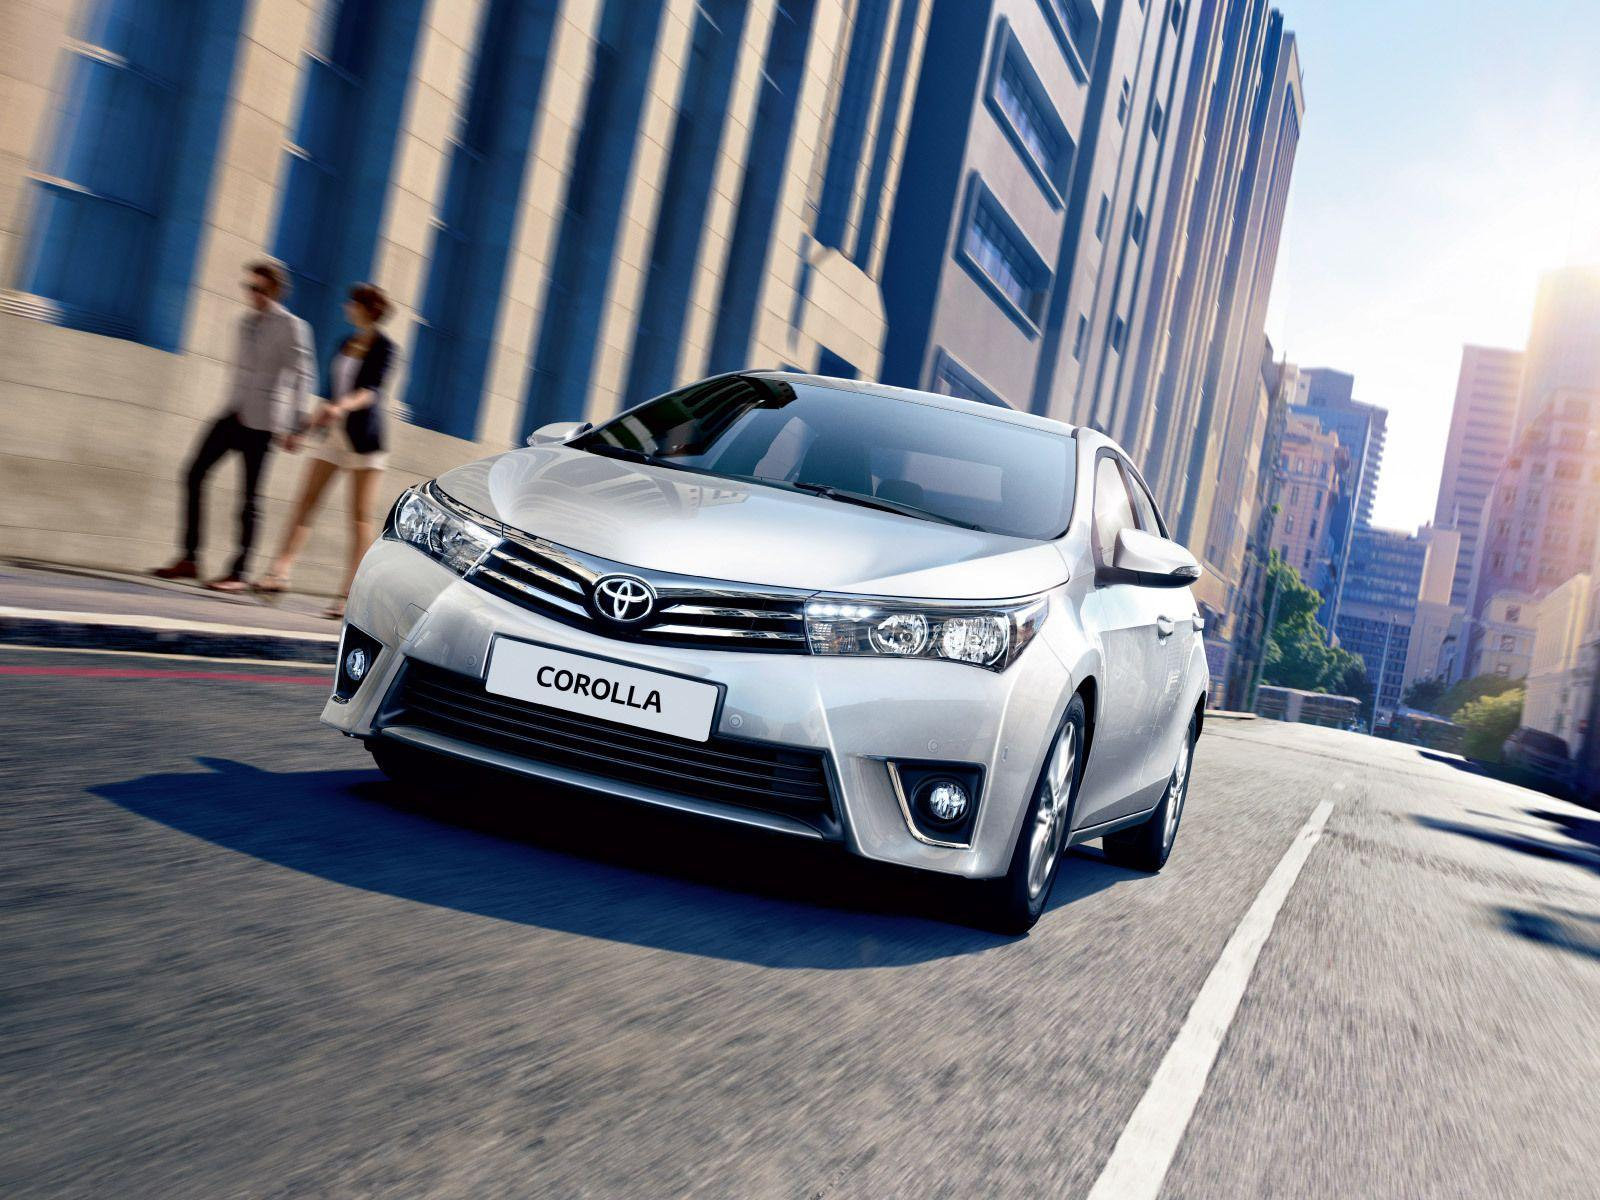 Beautiful car Toyota Corolla 2014 wallpapers and images ...